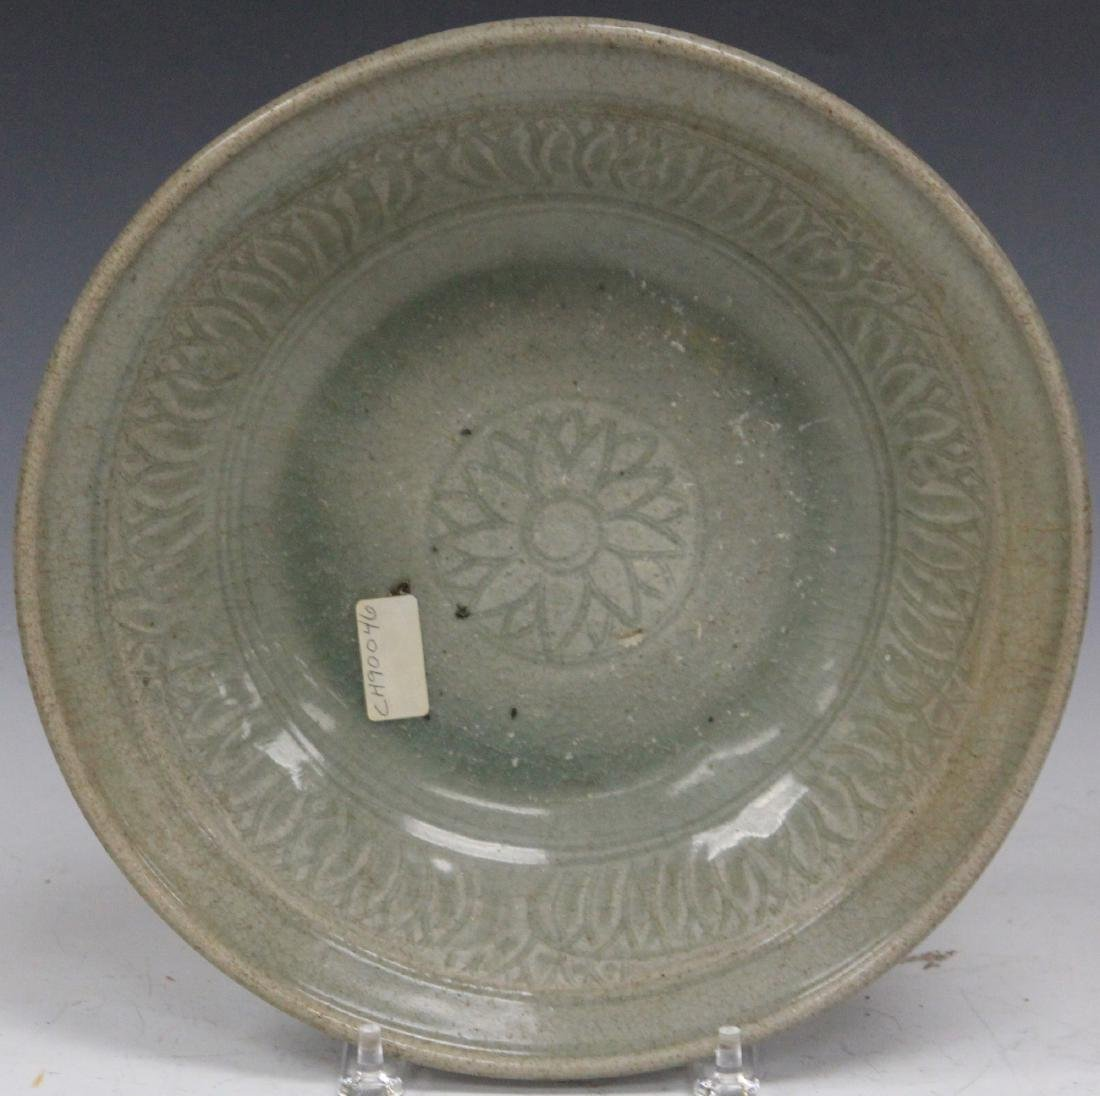 14TH/15TH C. THAI SAWANKHALOK CELADON BOWL